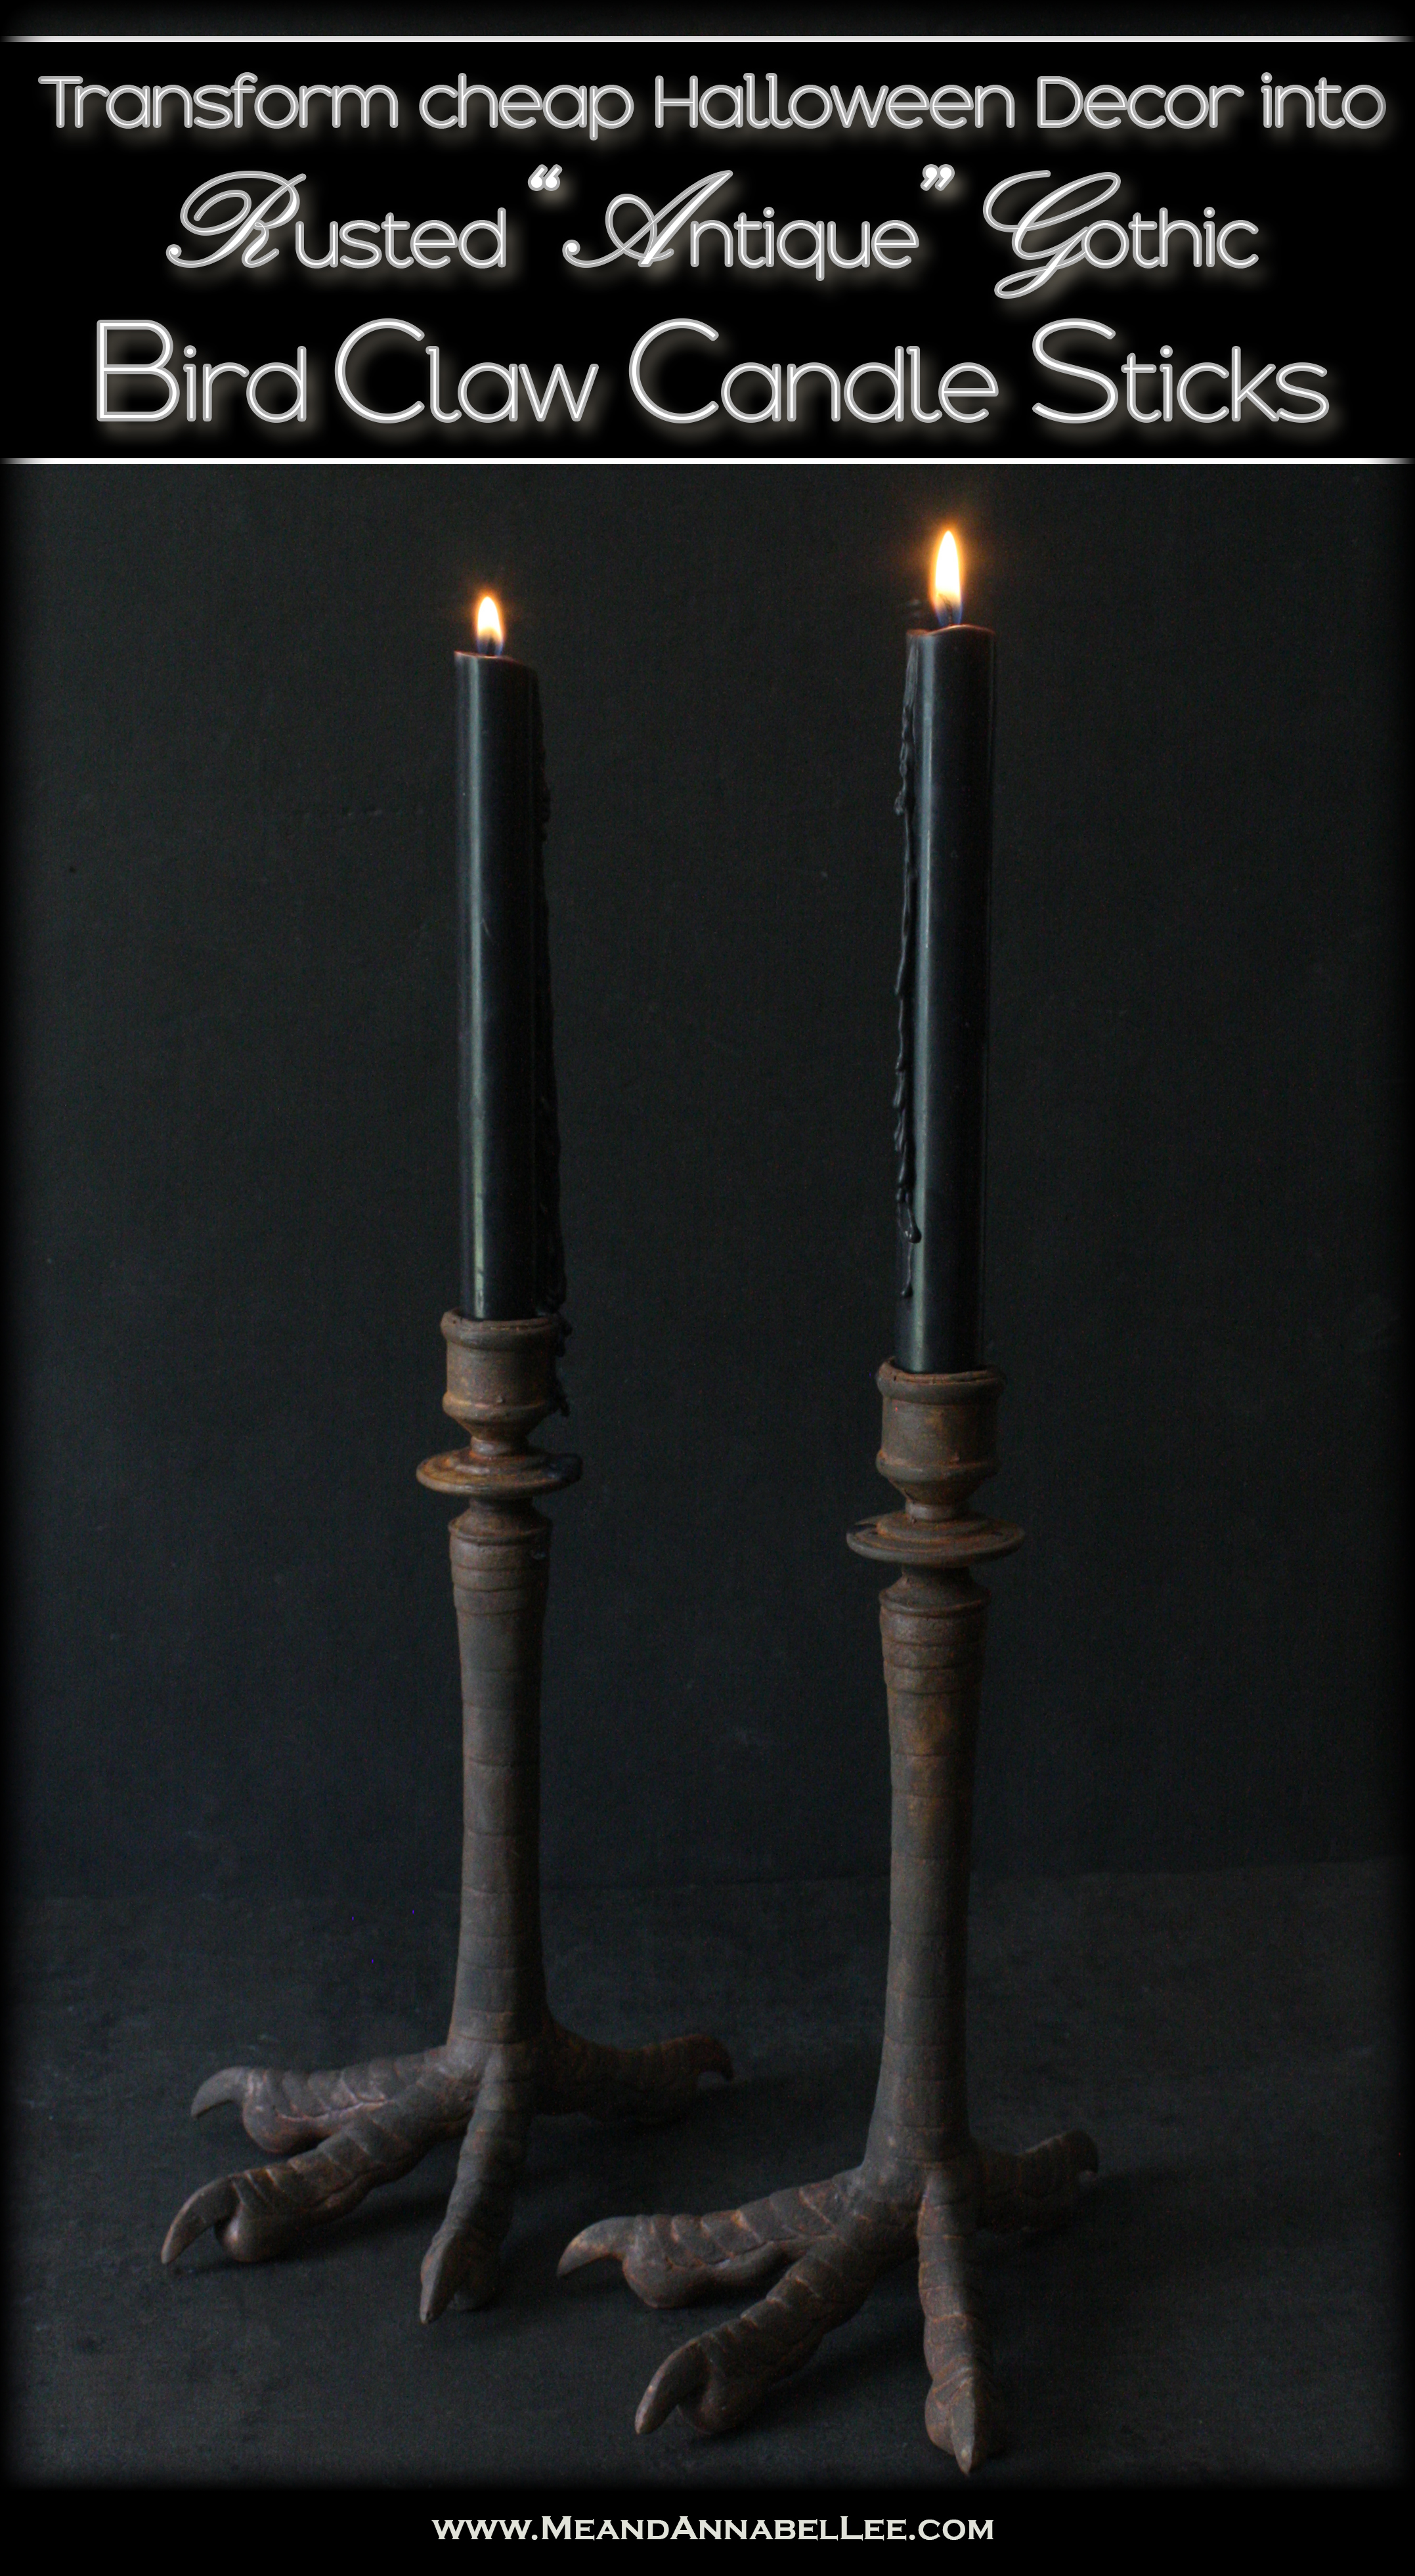 Gothic Antique Bird Claw Candle Holders How To Upcycle Halloween Decor Me And Annabel Lee